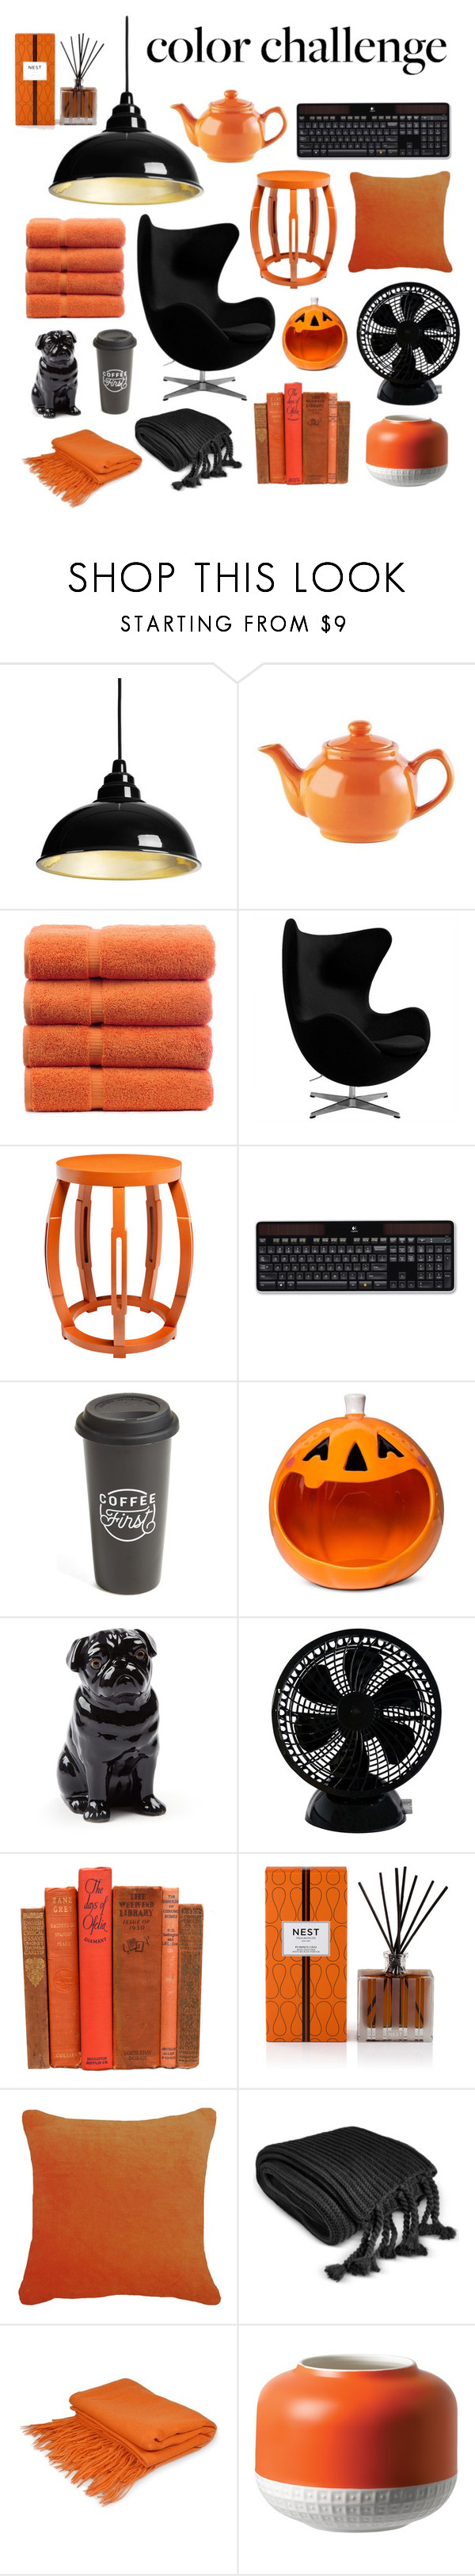 """""""Colour Challenge : Orange & Black"""" by chocolatecupcakes545 ❤ liked on Polyvore featuring interior, interiors, interior design, home, home decor, interior decorating, Price & Kensington, Bungalow 5, Logitech and The Created Co."""